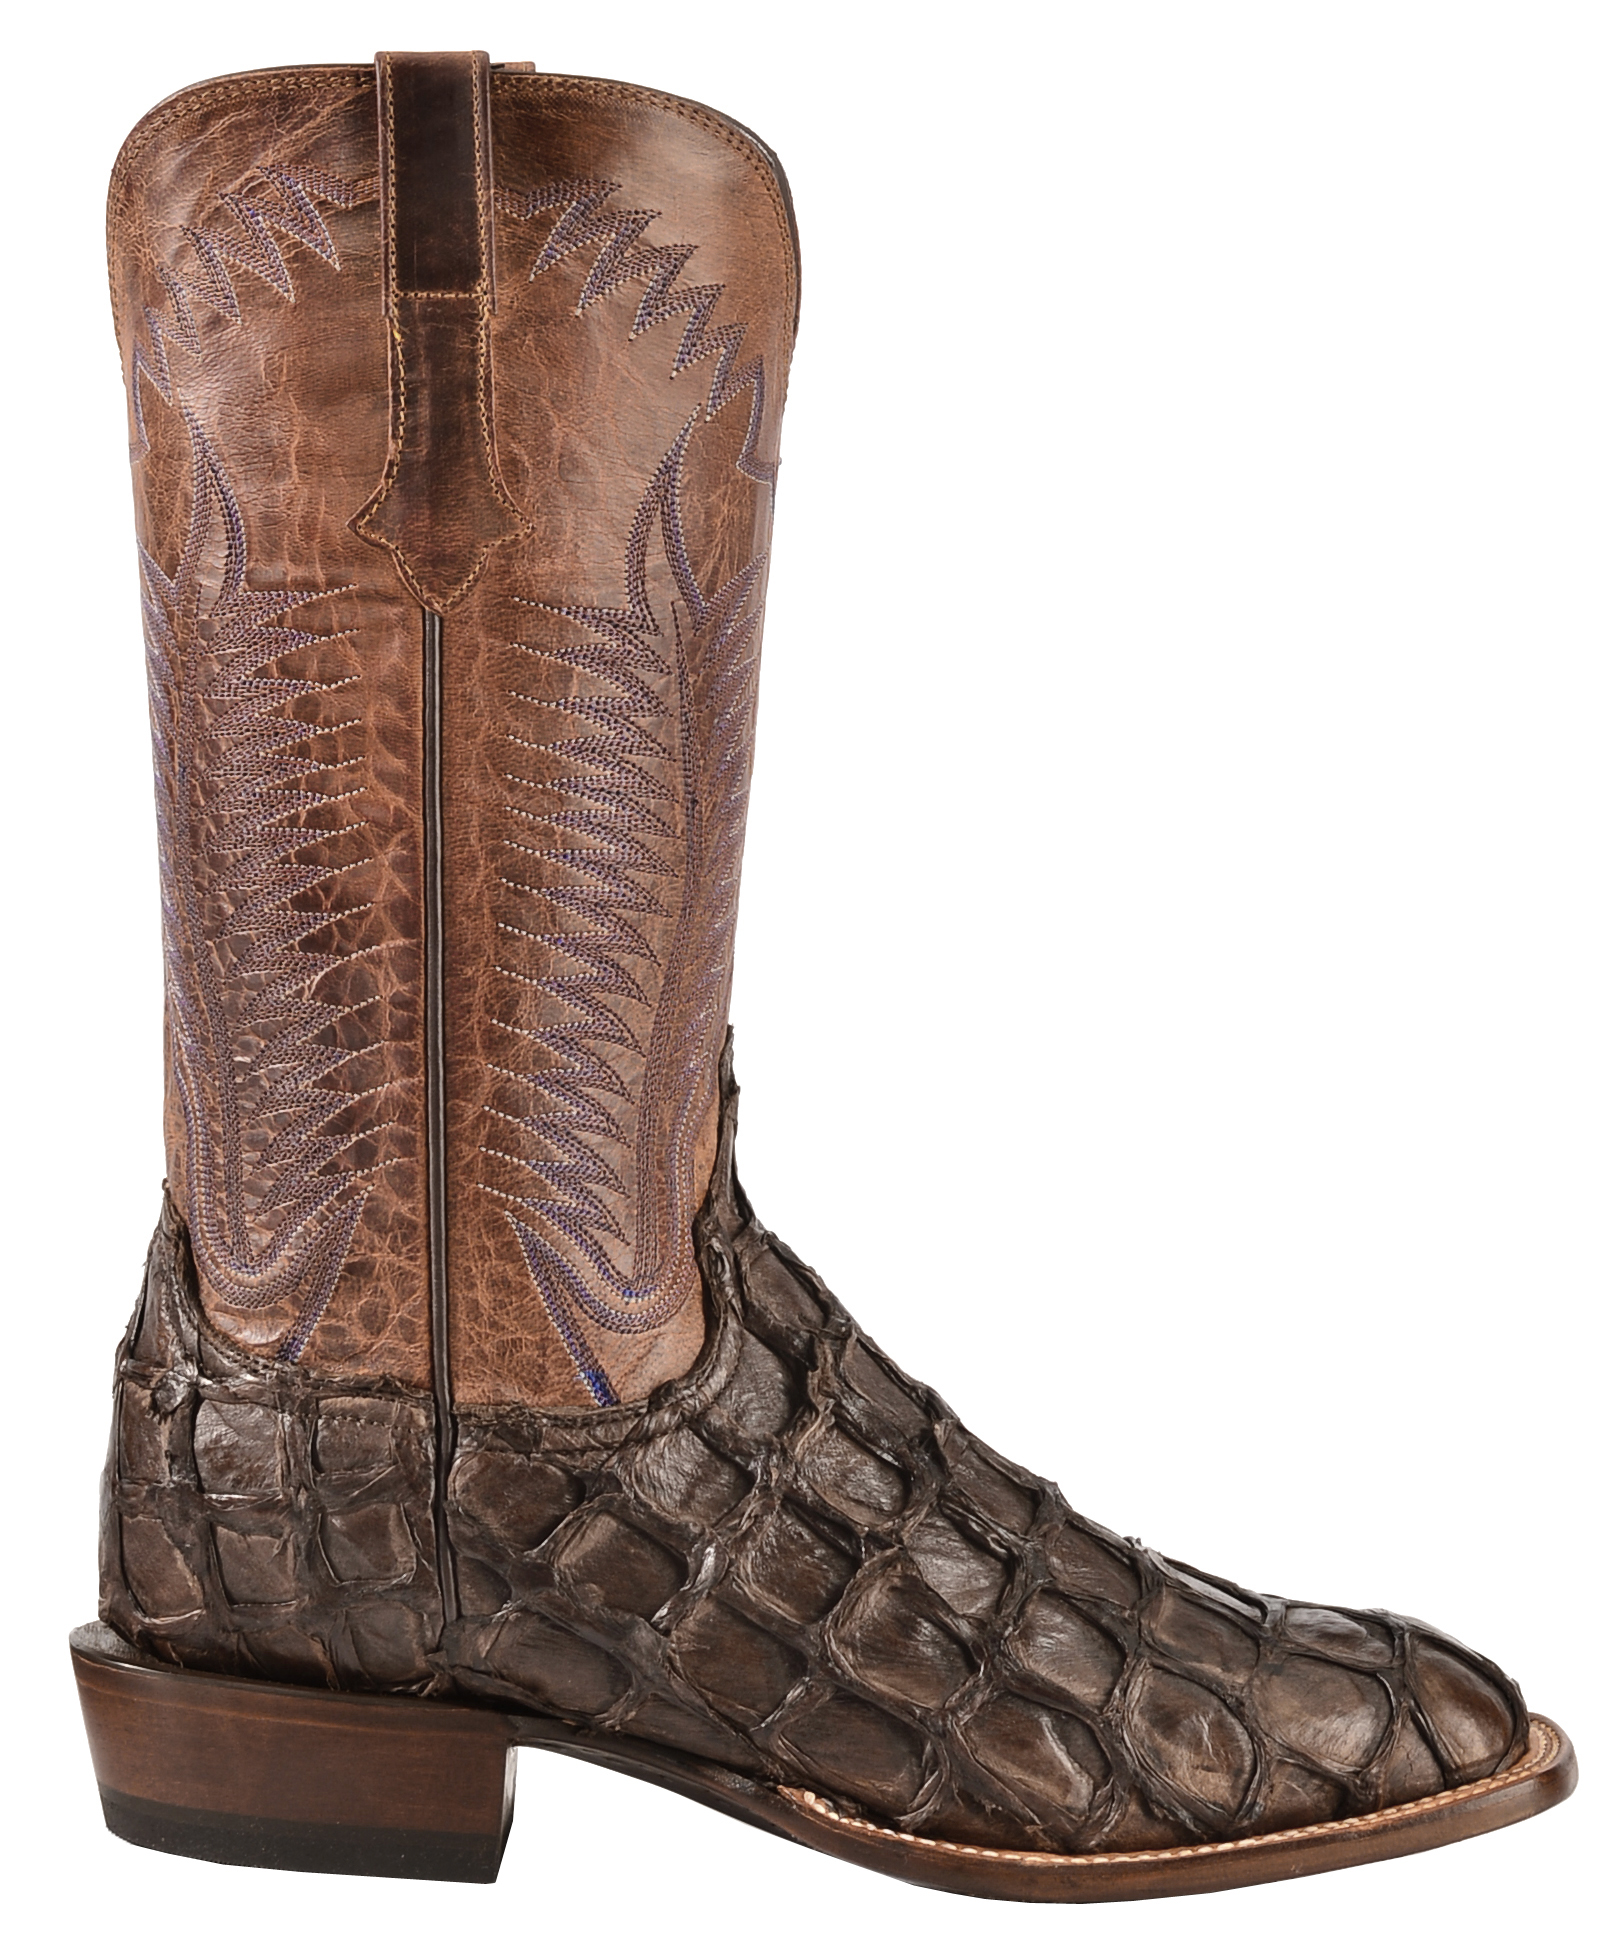 Lucchese chocolate brown brooks pirarucu cowboy boots for Pirarucu fish boots